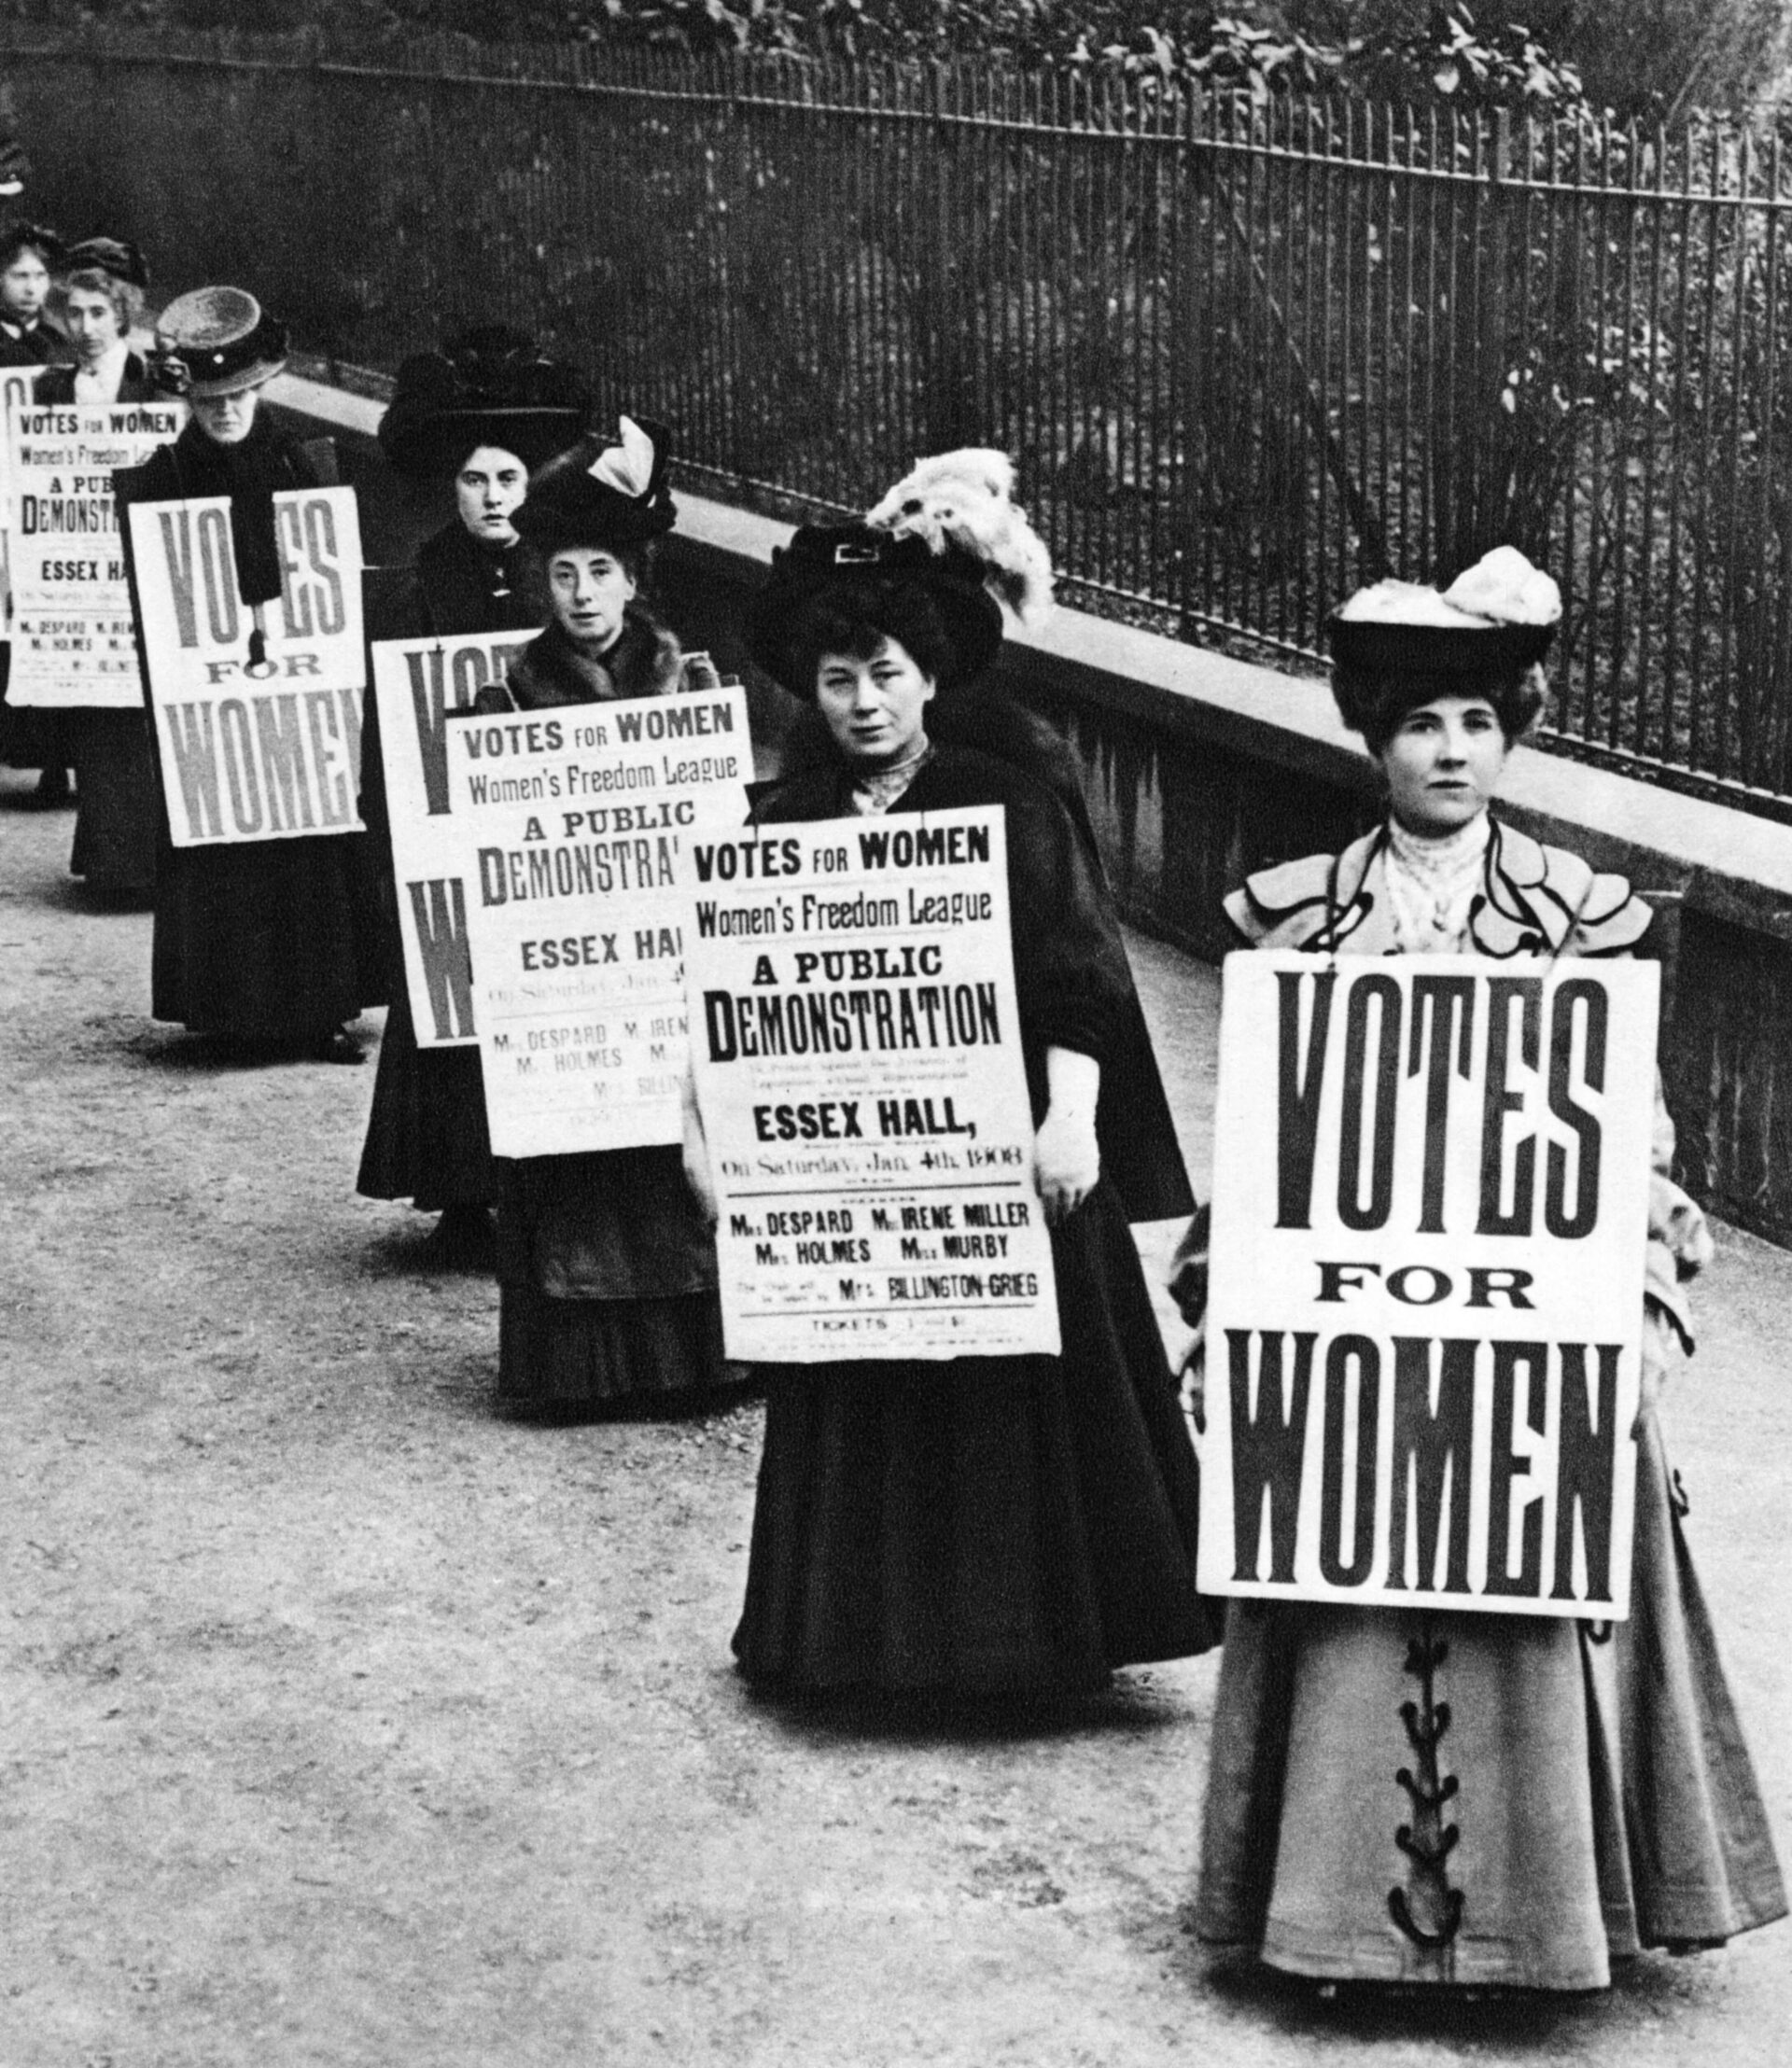 old fashioned vote for women photo